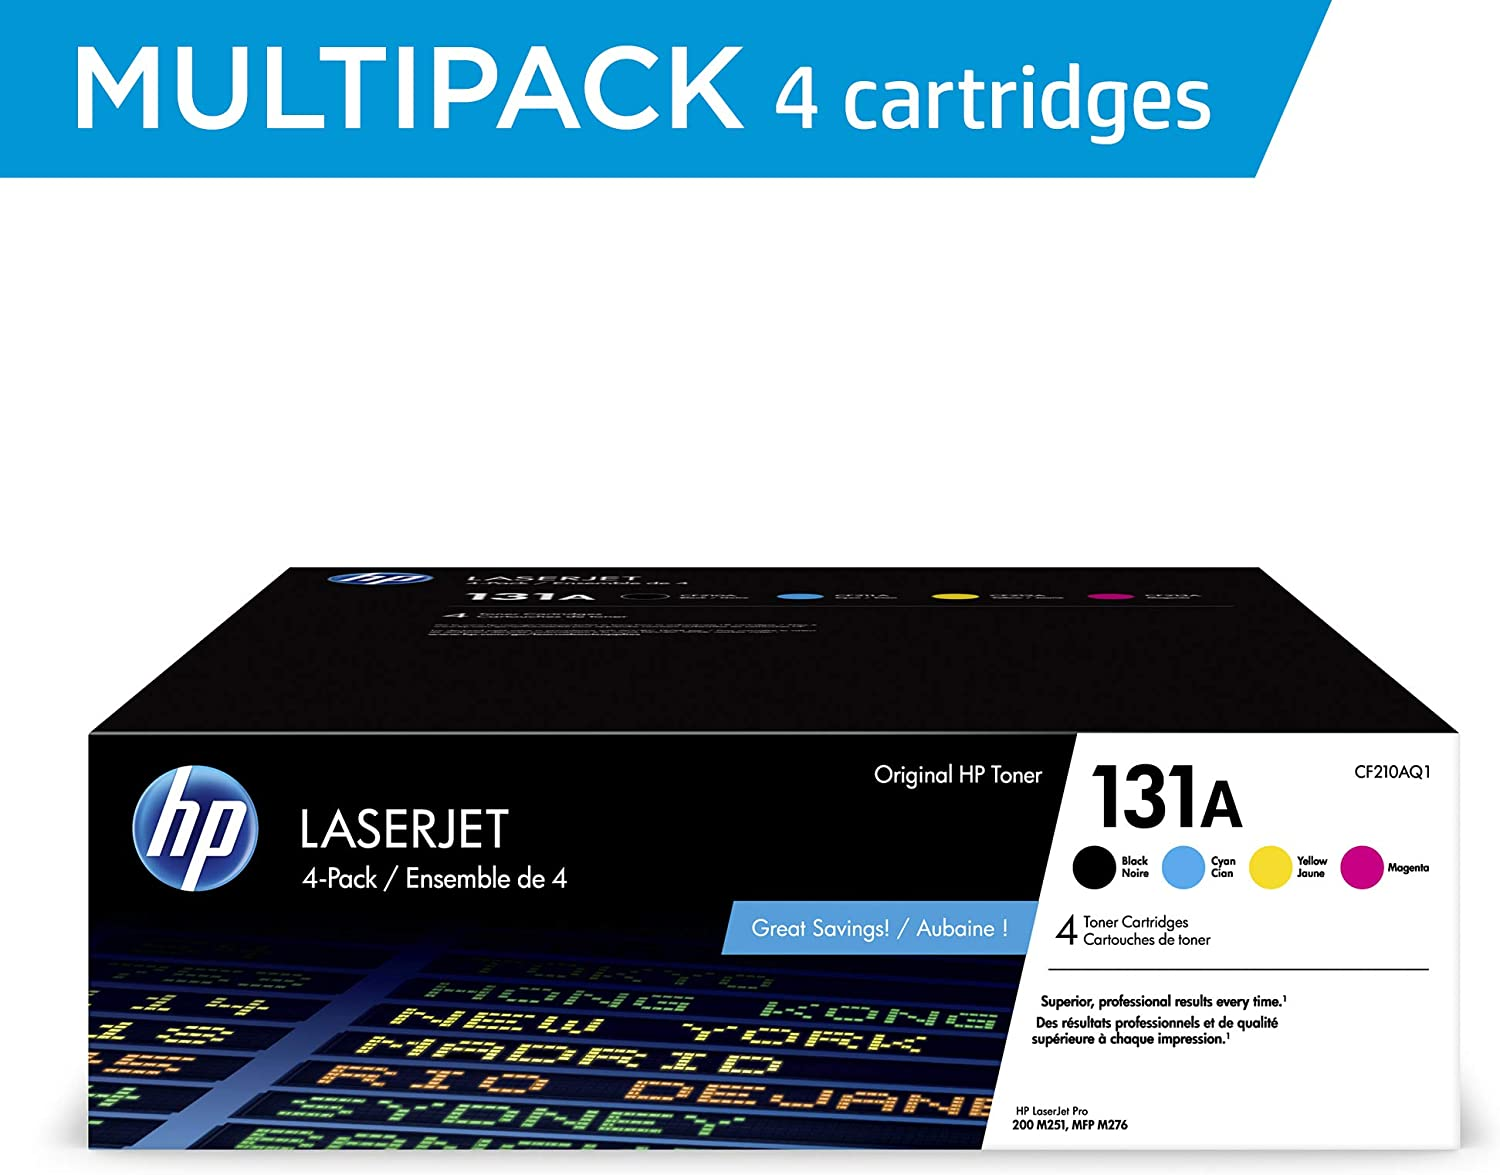 HP 131A | CF210AQ1 | 4 Toner Cartridges | Black, Cyan, Magenta, Yellow